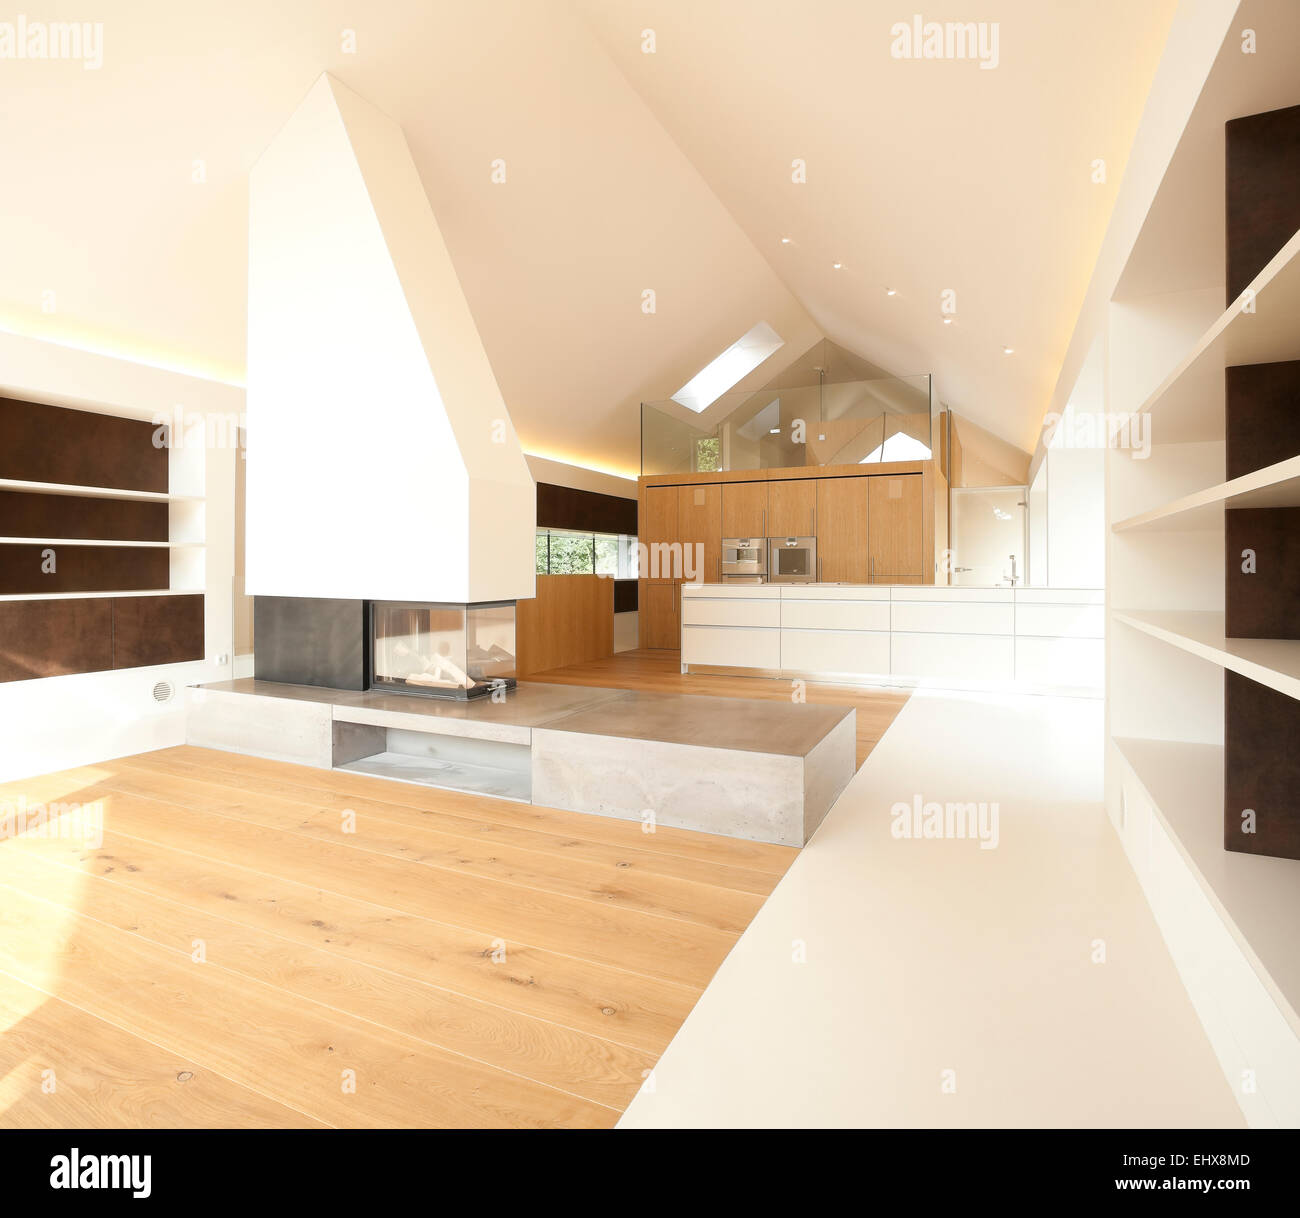 Open Plan Kitchen Living Room: Home Ownership, Living Room With Fireplace And Open Plan Kitchen Stock Photo, Royalty Free Image